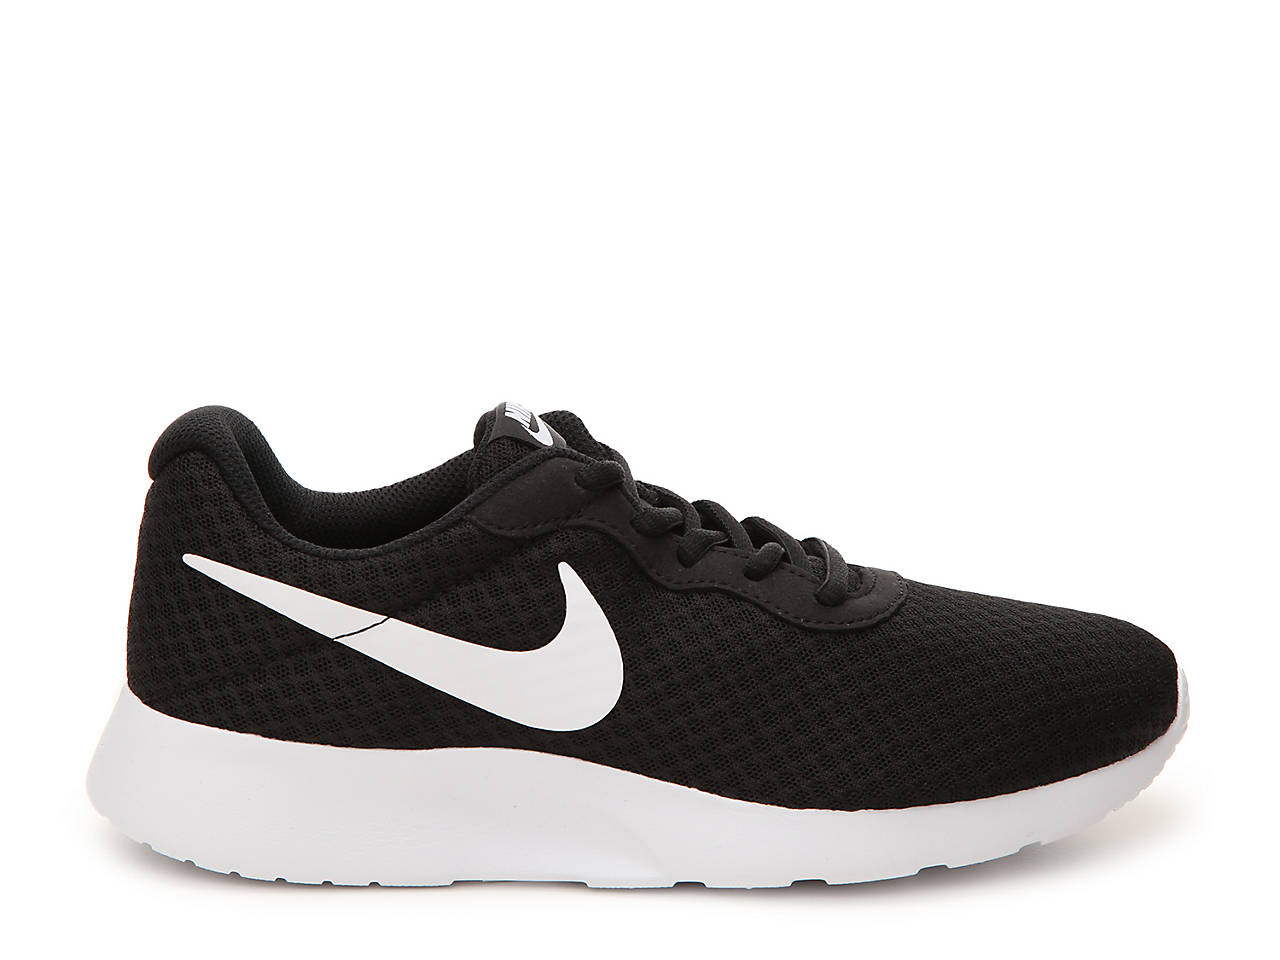 Nike Tanjun Sneaker - Womens Womens Shoes  DSW